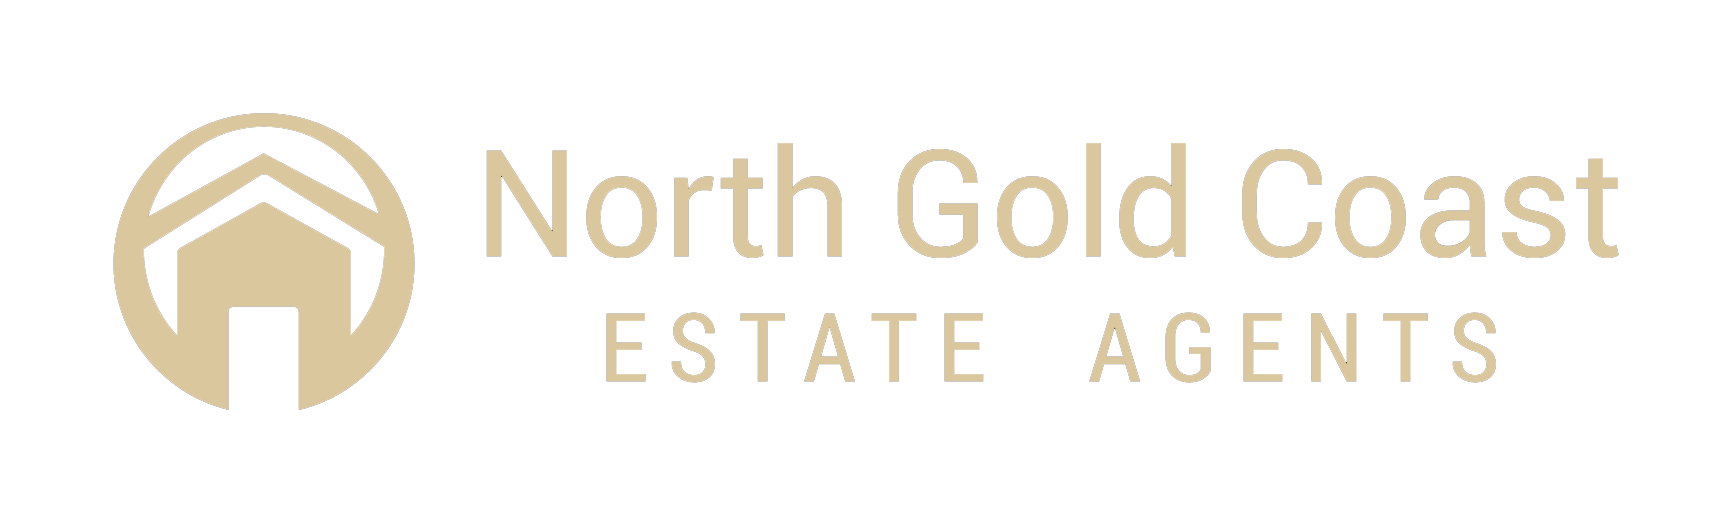 North Gold Coast Estate Agents